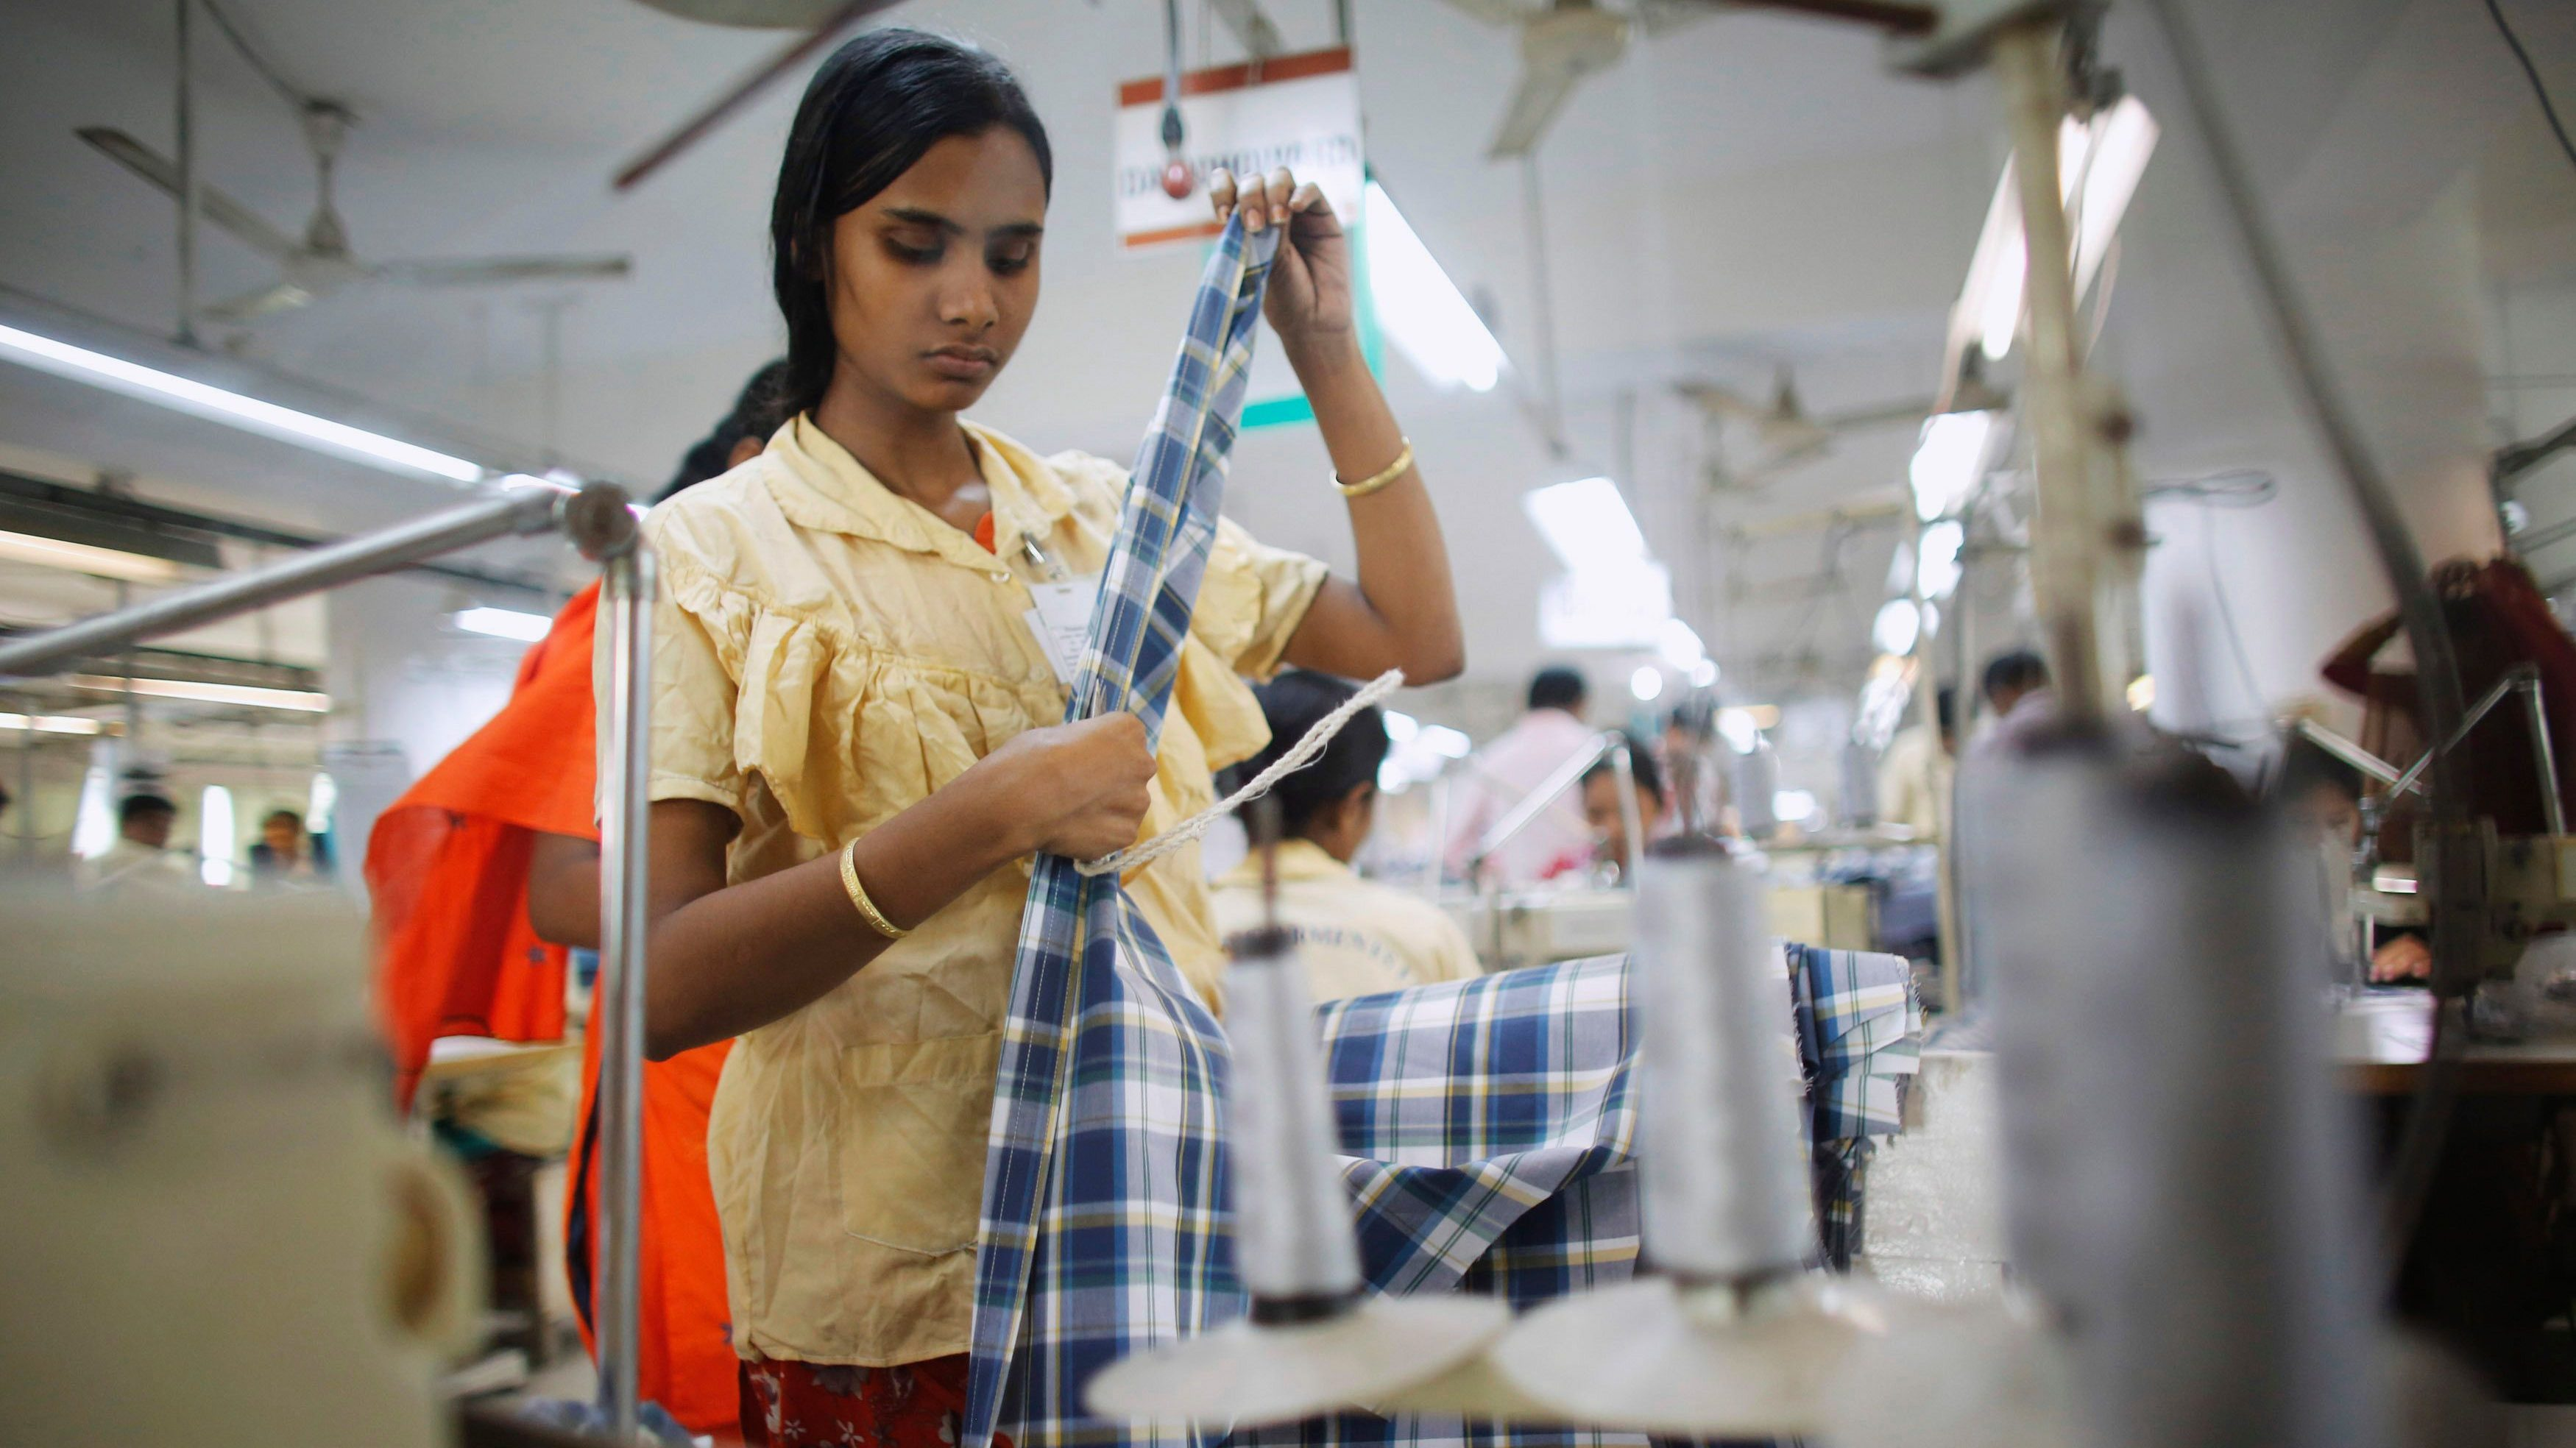 An employee works in a factory of Babylon Garments in Dhaka January 3, 2014. On the outskirts of Dhaka, Babylon Garments has shortened work shifts to eight hours from the usual 10 and plans to shutter production lines as months of election-related violence disrupts transport and prompts global retailers to curb orders. Picture taken January 3, 2014.  To match BANGLADESH-GARMENTS/  REUTERS/Andrew Biraj (BANGLADESH - Tags: BUSINESS EMPLOYMENT TEXTILE) - GM1EA18100B01